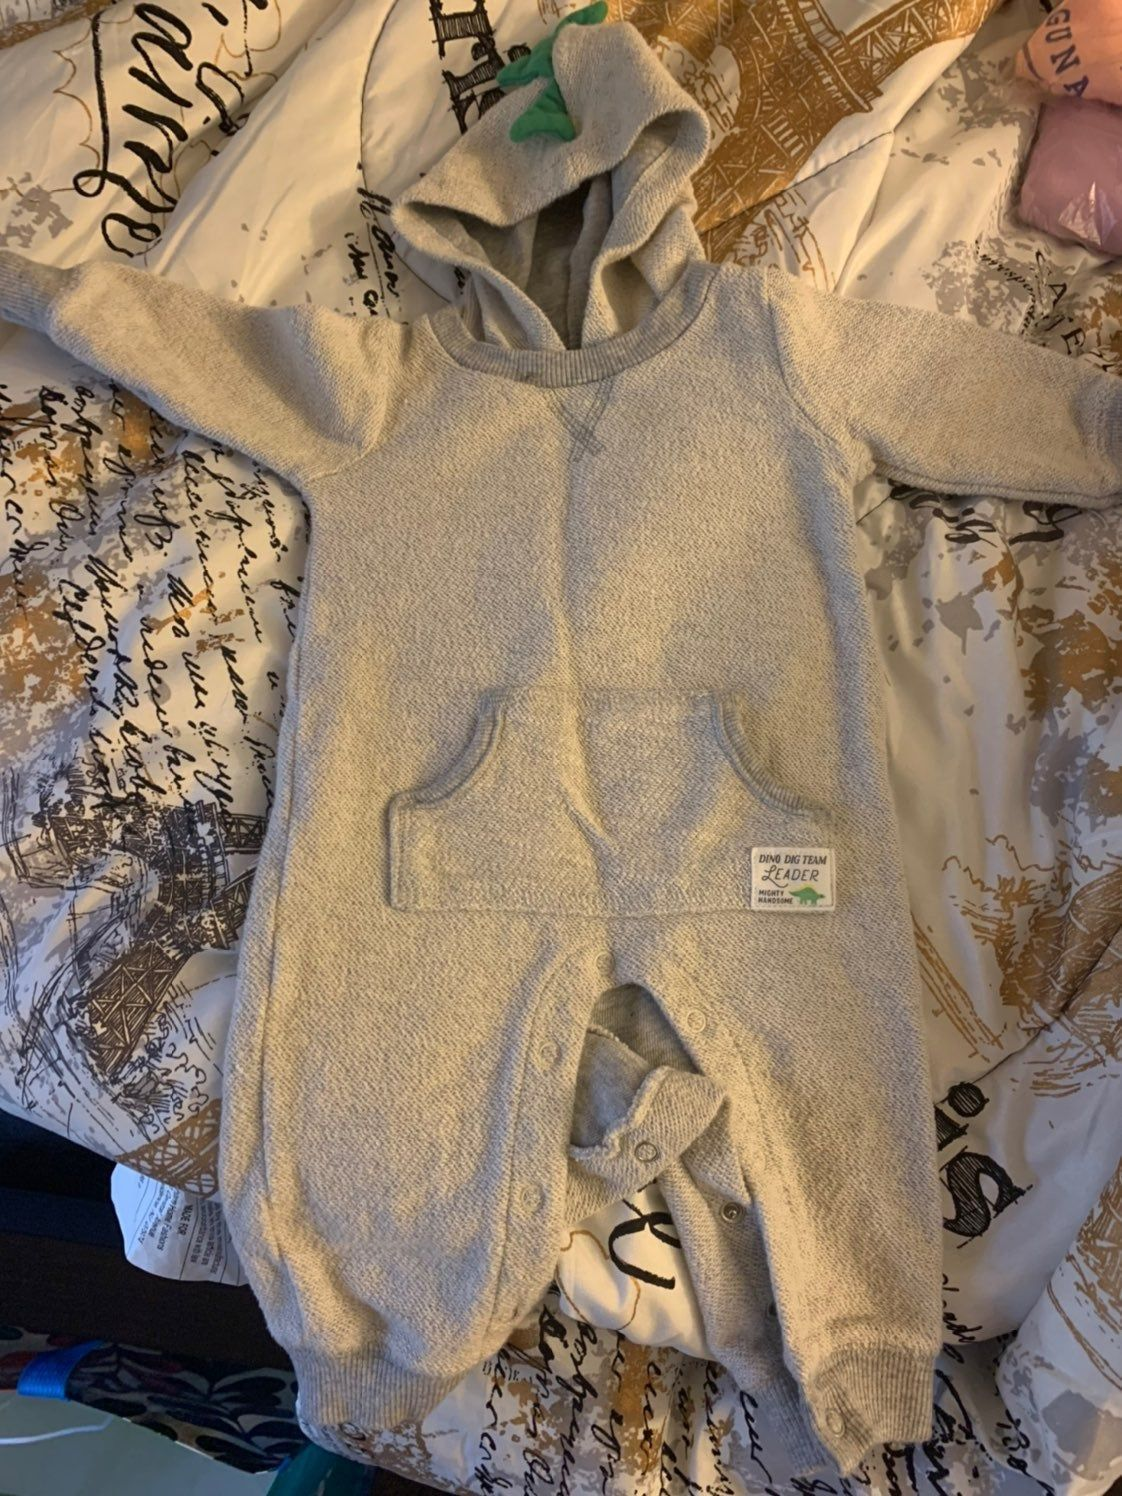 Size 6 months one Peice with dinosaur hood. There is a small stain, it's very hard to see. See pics 3&4. Other than that in good condition #dinosaurpics Size 6 months one Peice with dinosaur hood. There is a small stain, it's very hard to see. See pics 3&4. Other than that in good condition #dinosaurpics Size 6 months one Peice with dinosaur hood. There is a small stain, it's very hard to see. See pics 3&4. Other than that in good condition #dinosaurpics Size 6 months one Peice with dinosa #dinosaurpics